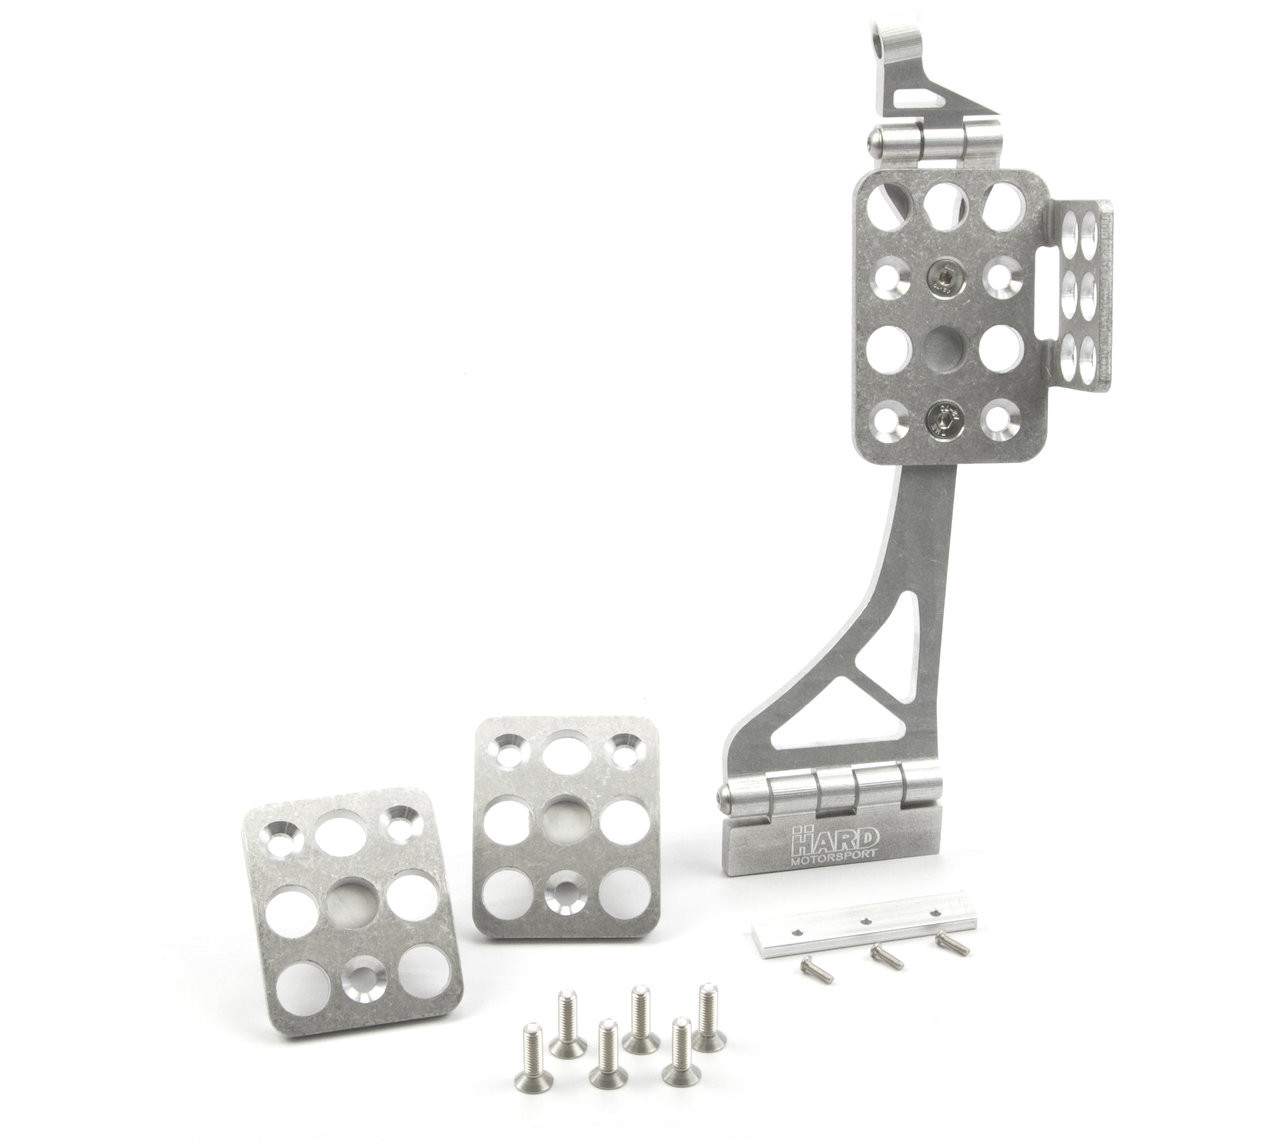 Aluminum Racing pedal Kit for BMW E36 M3 With Adjustable Gas Pedal Foot Rest.